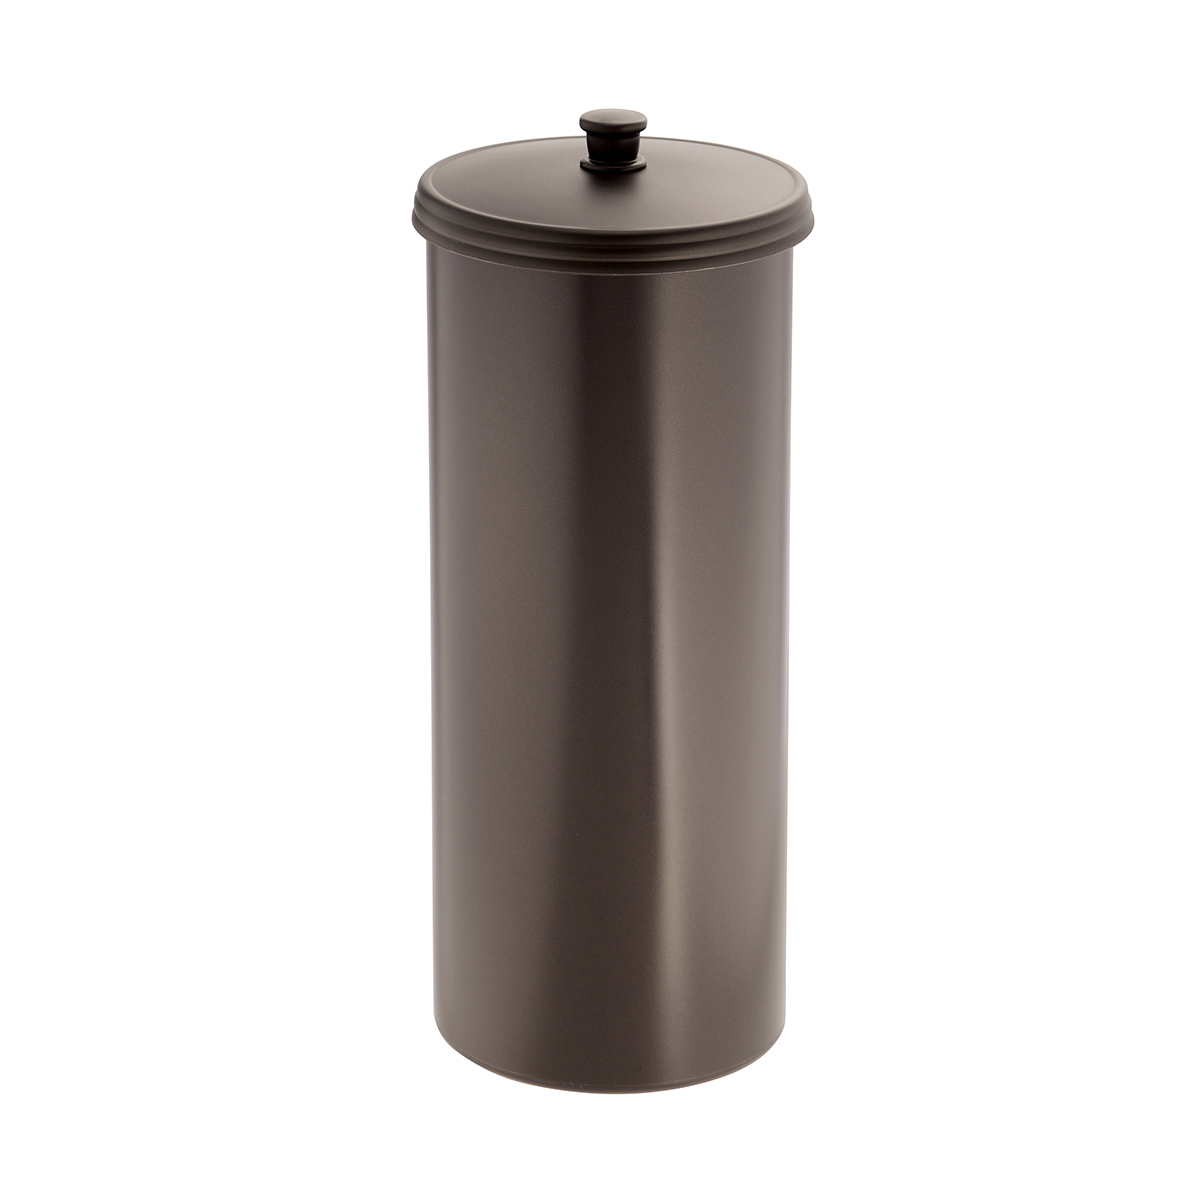 Tall bronze bathroom toilet paper canister from Walmart photo